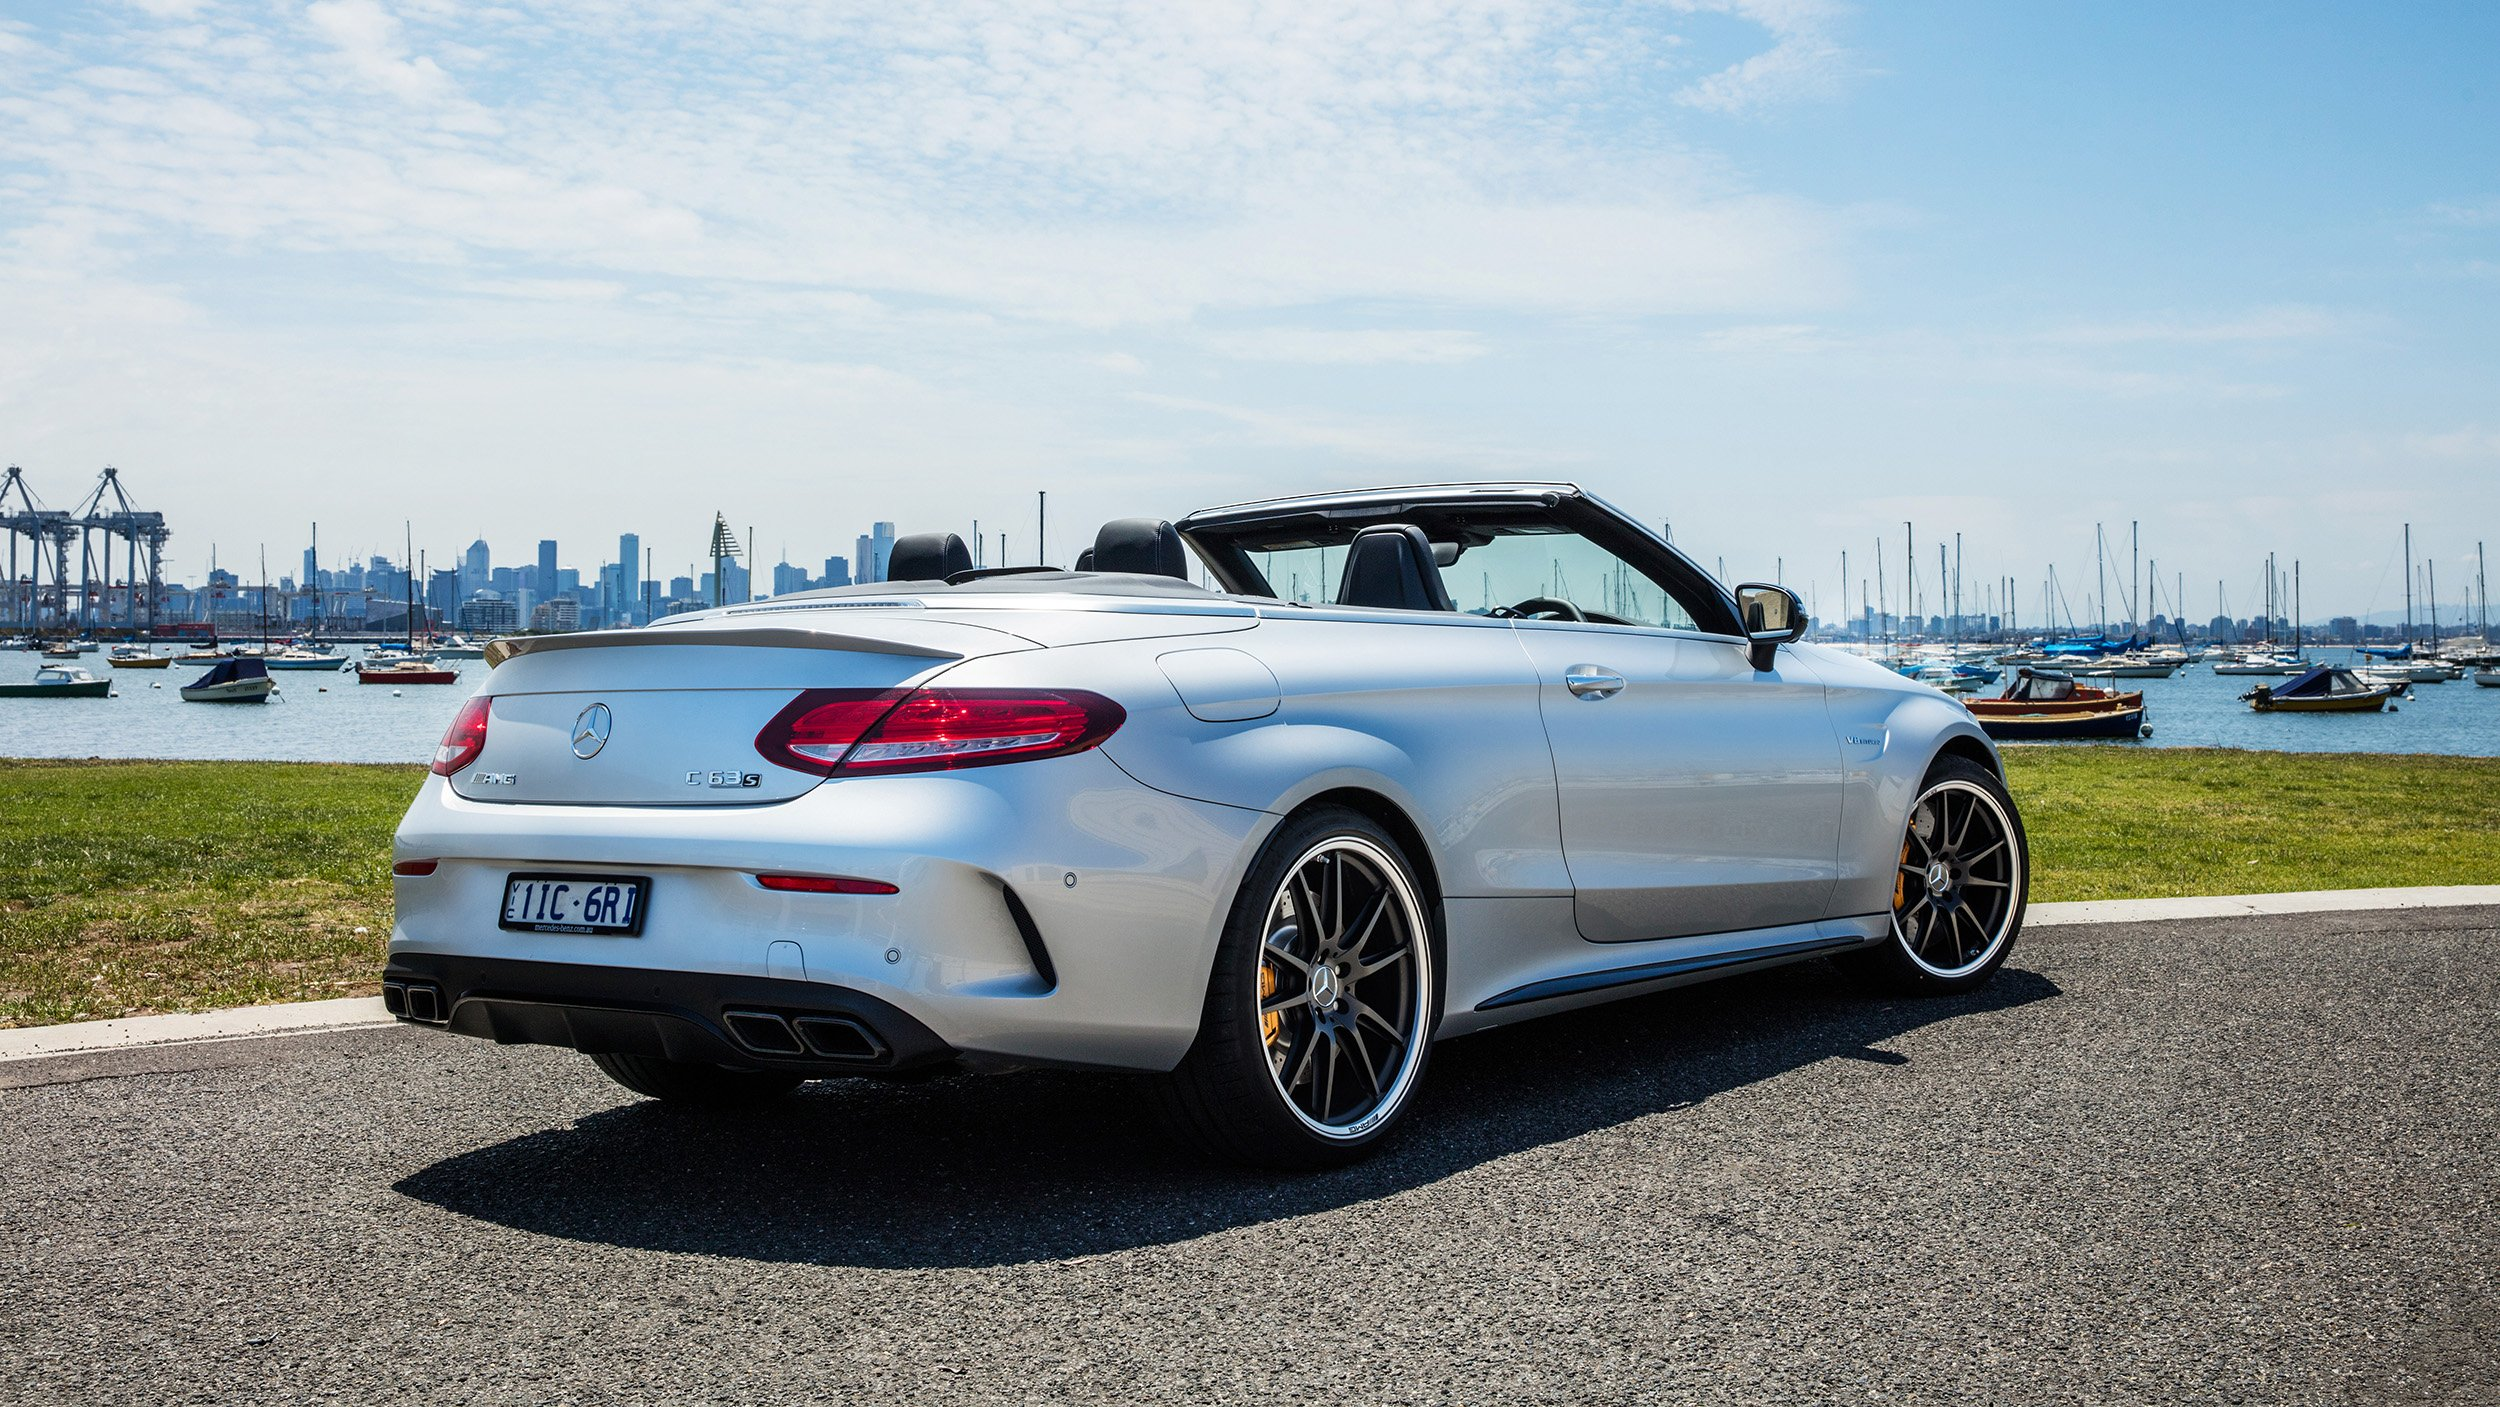 2017 mercedes amg c63 s cabriolet review caradvice for Mercedes benz c63 2017